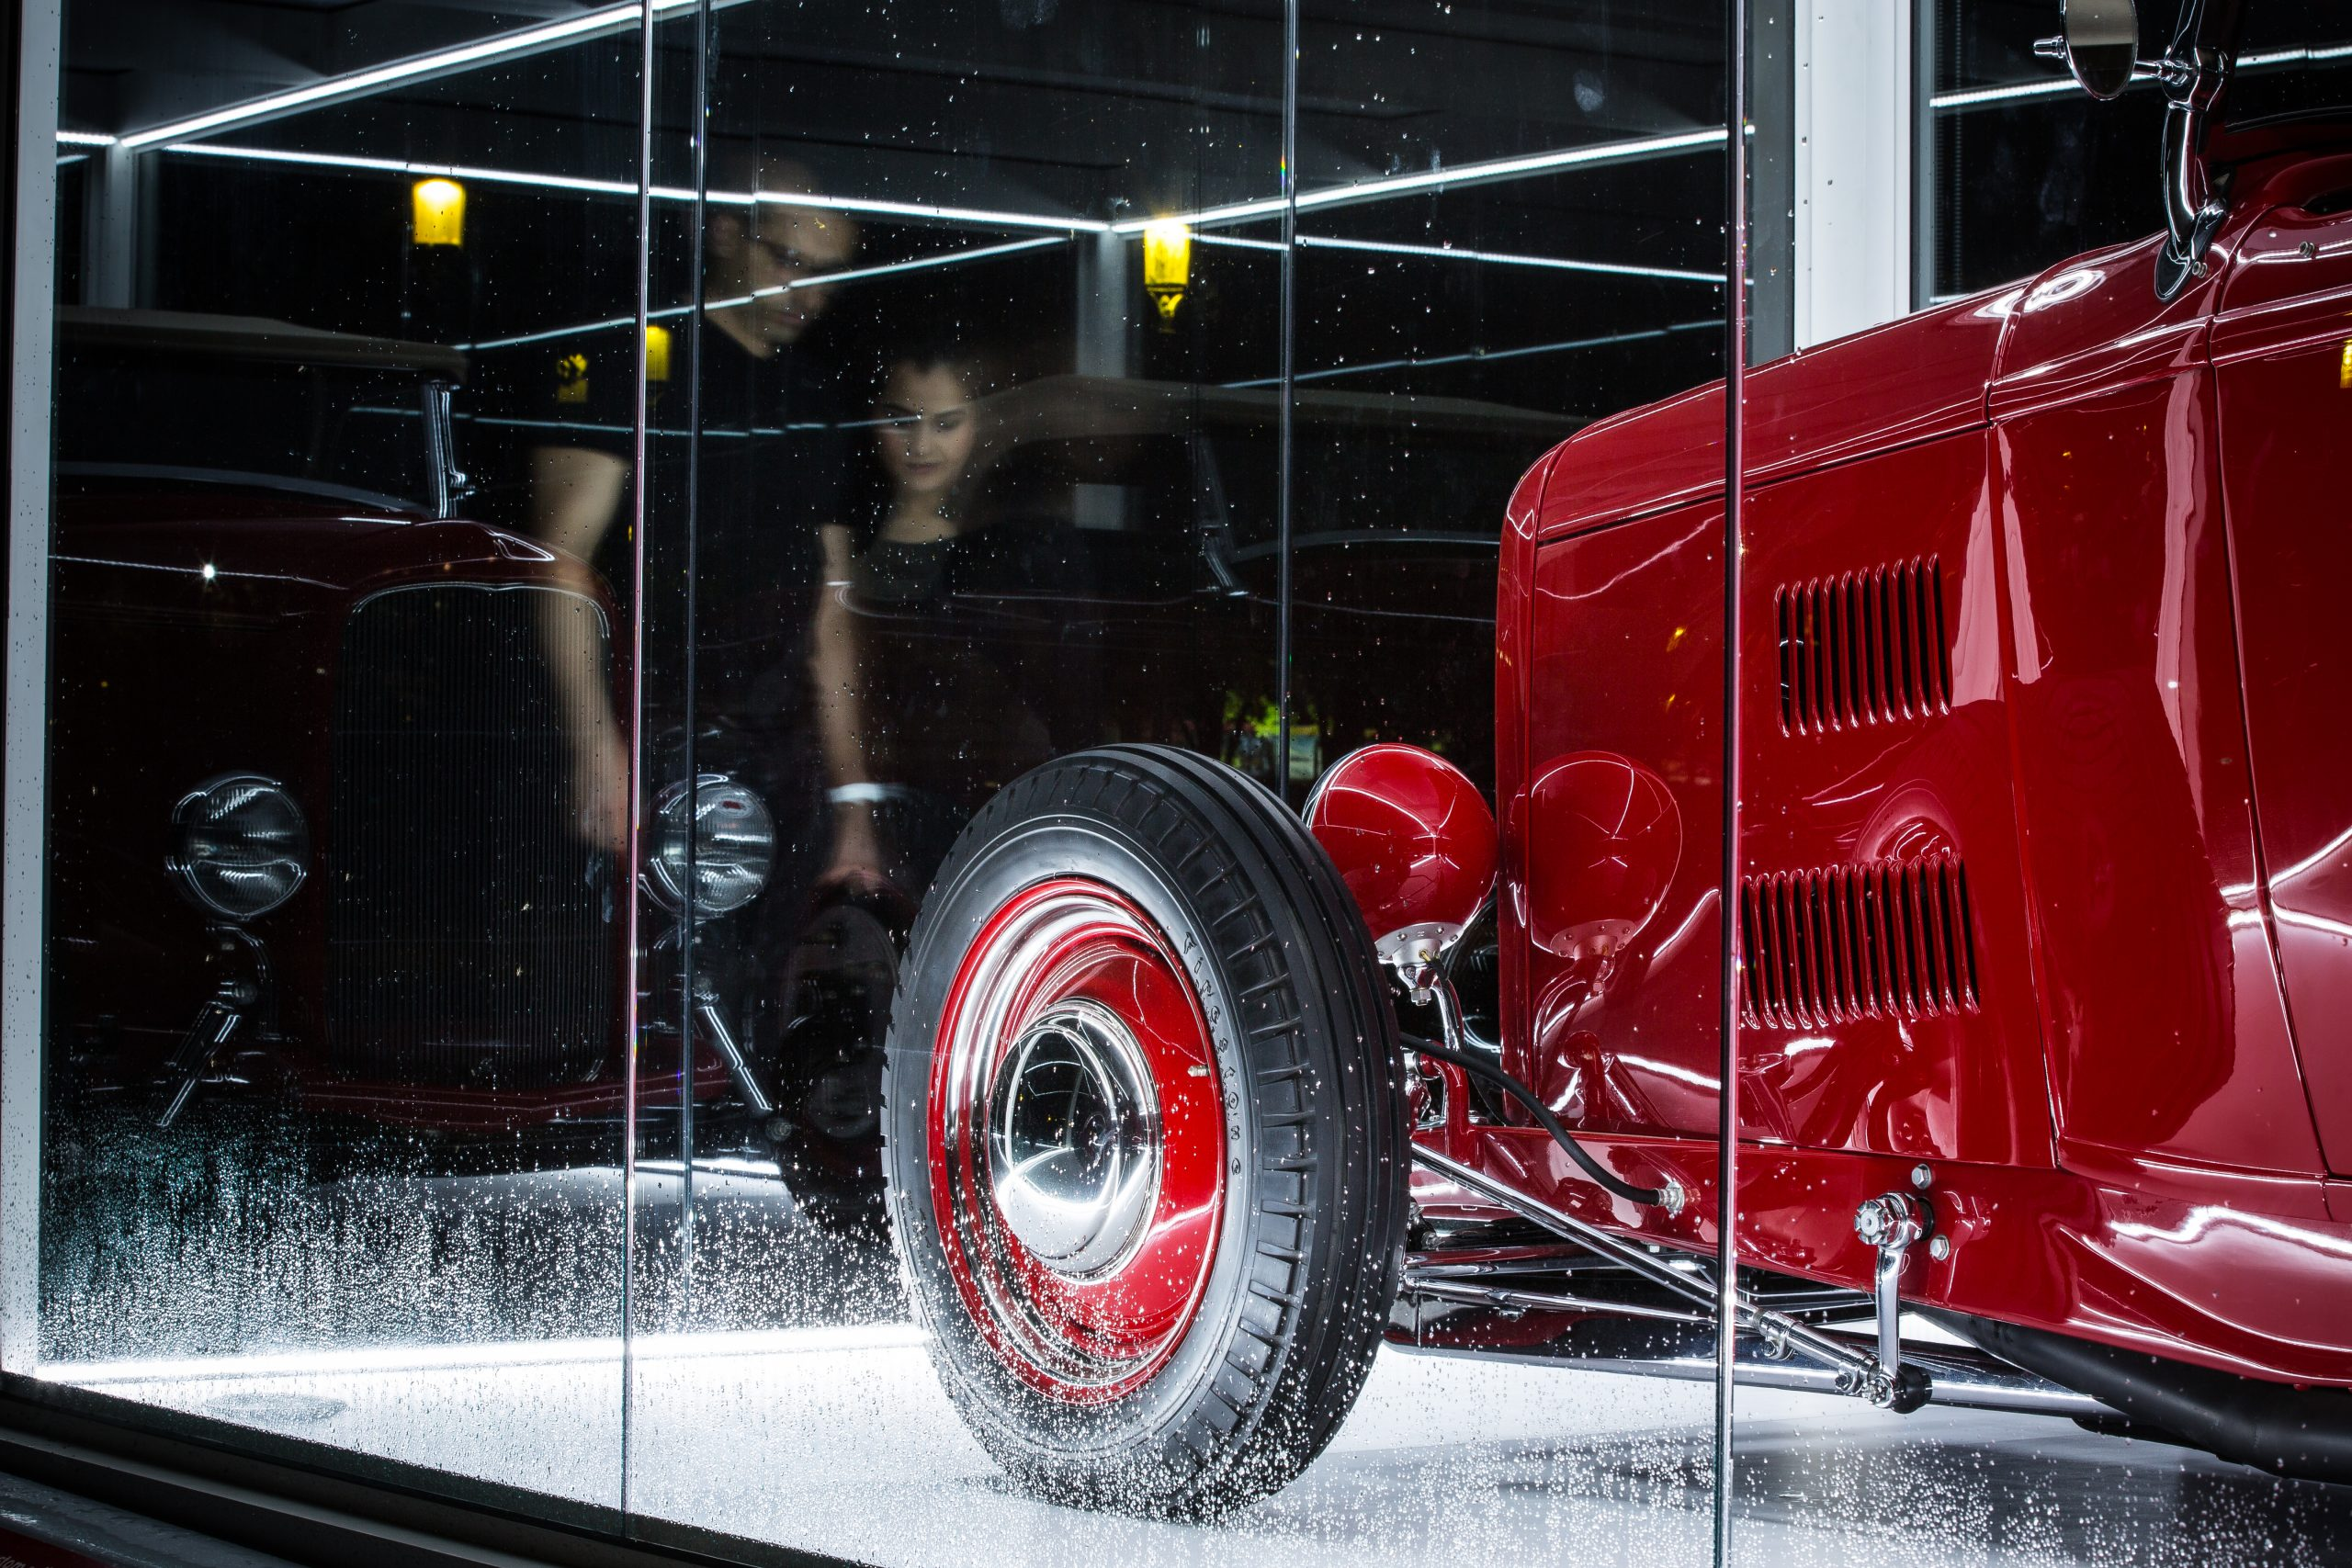 McGee Roadster - 1932 Ford - HVA Cars at the Capital 8